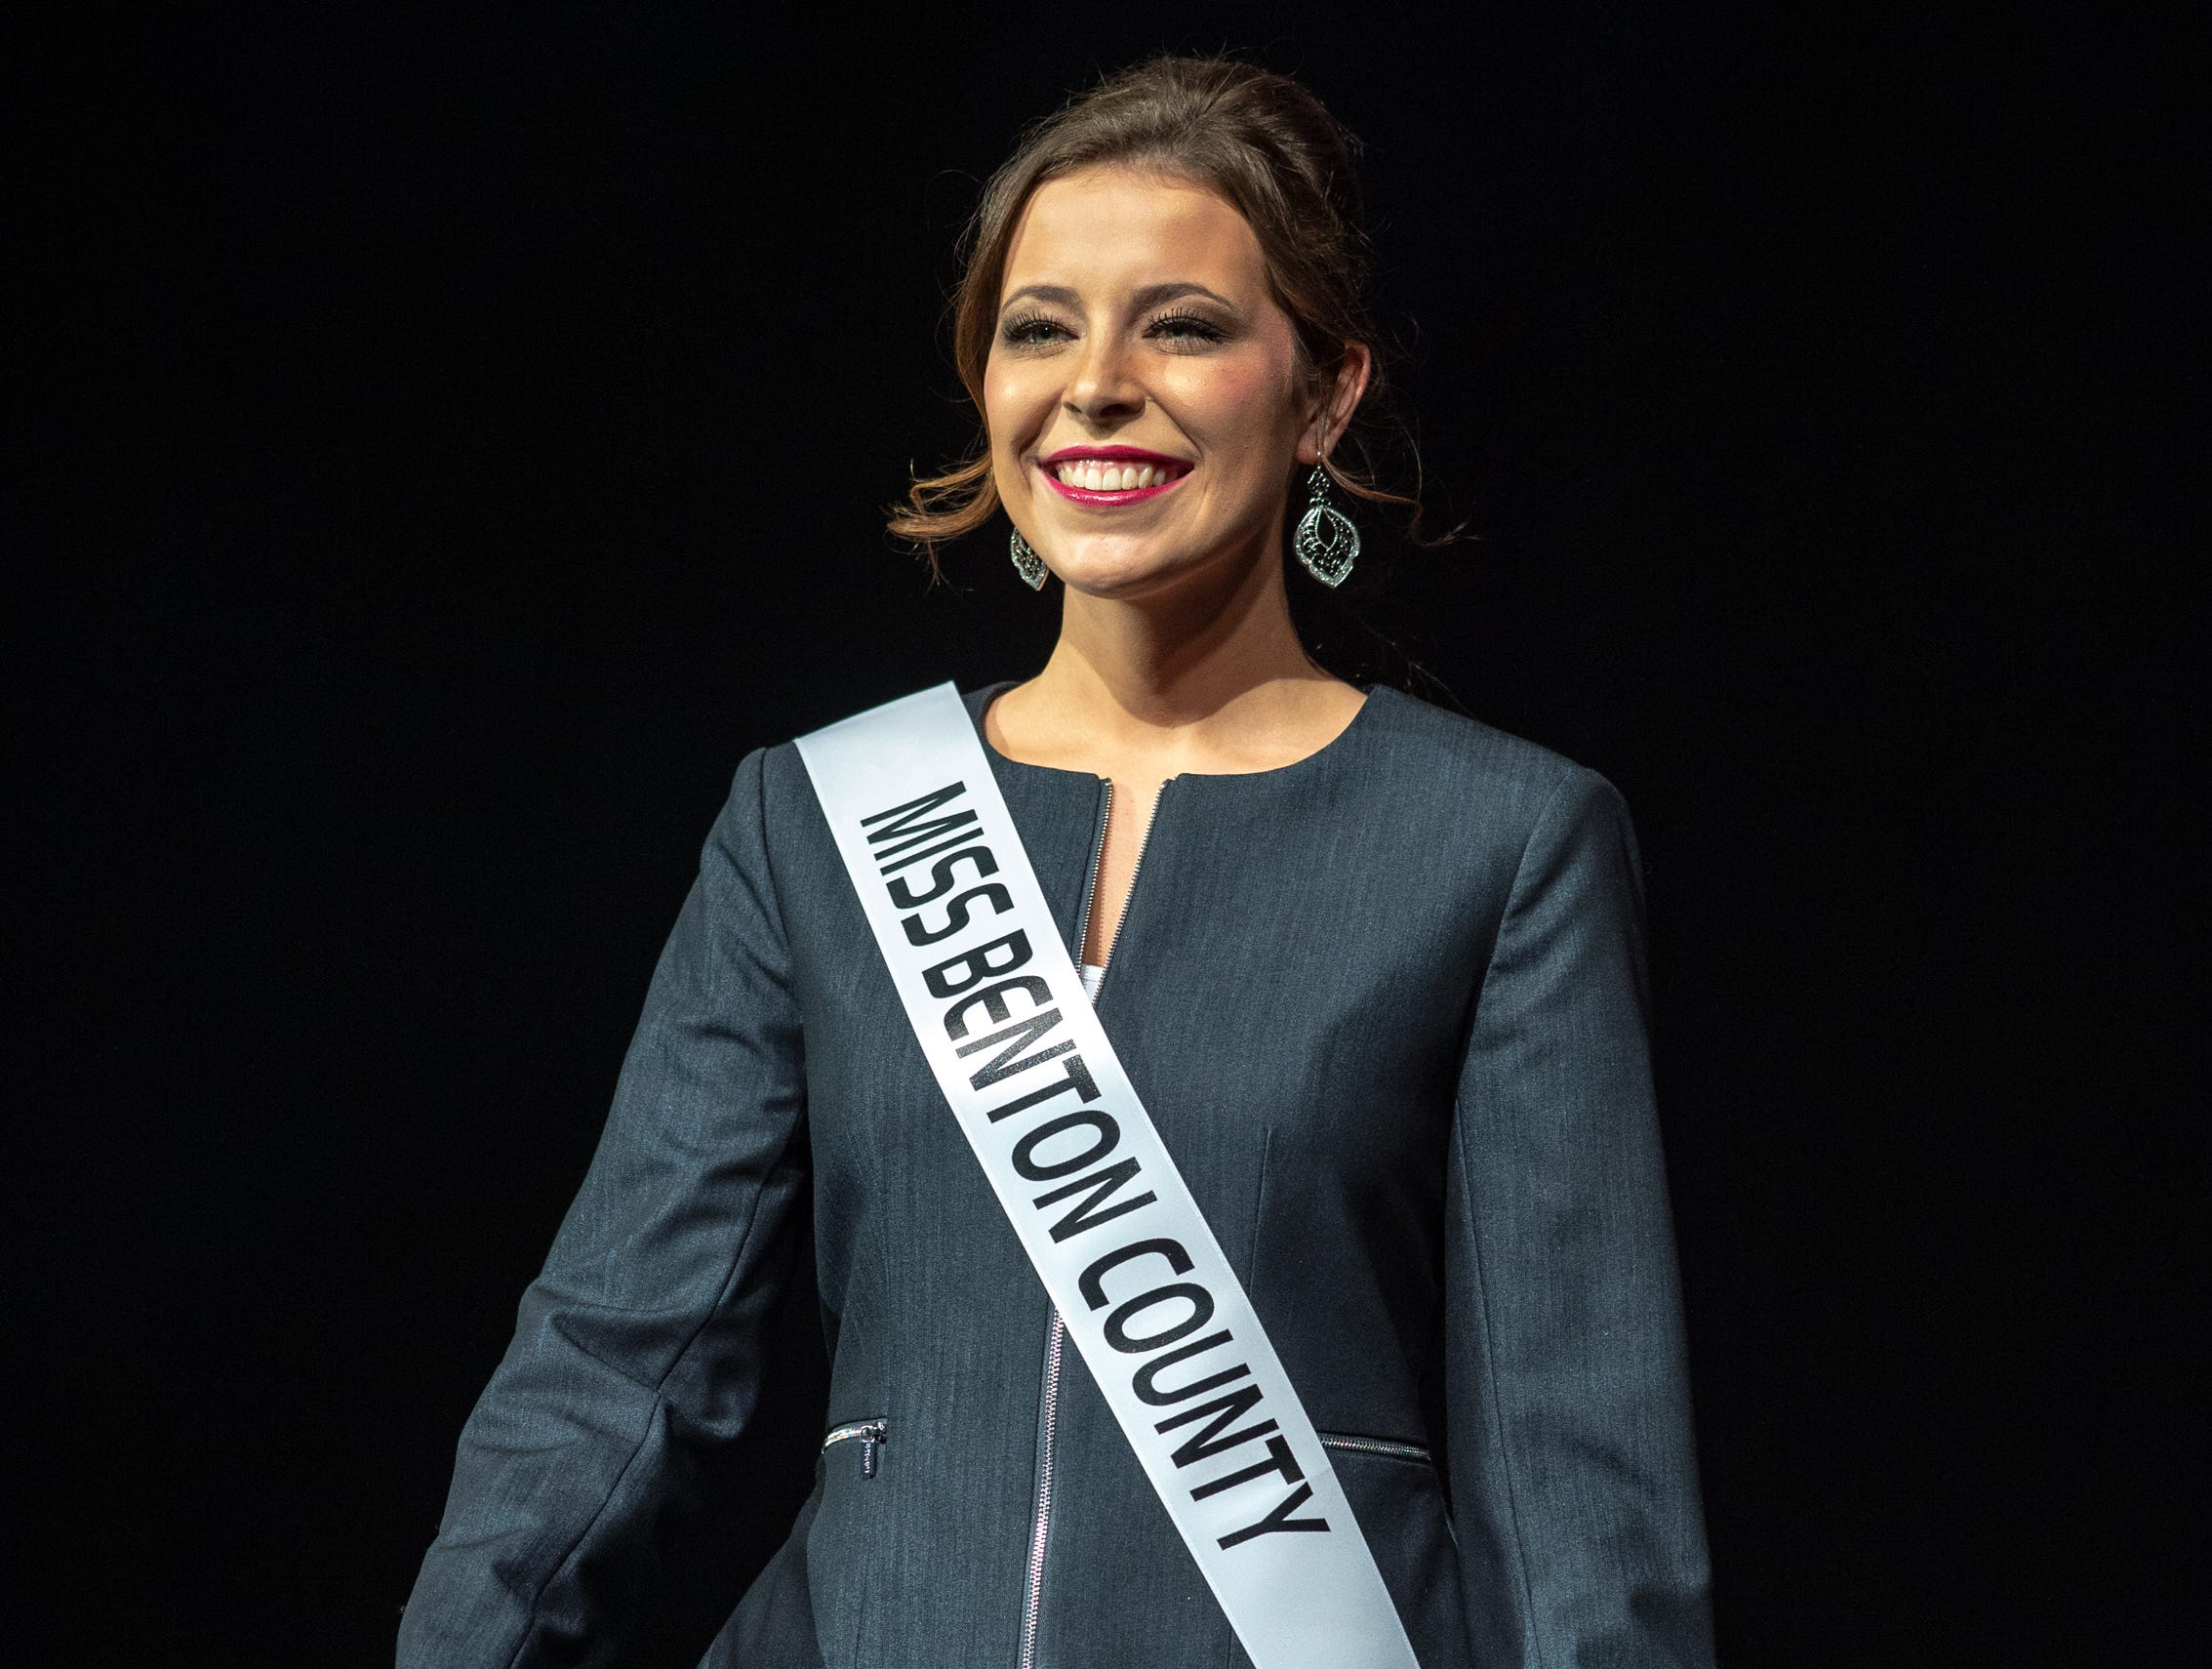 Miss Benton County, Halle Shoults, was crowned the 2019 Indiana State Fair Queen during the 61st Indiana State Fair Queen Pageant at the Indiana State Fairgrounds in Indianapolis on Sunday, Jan. 6, 2019.